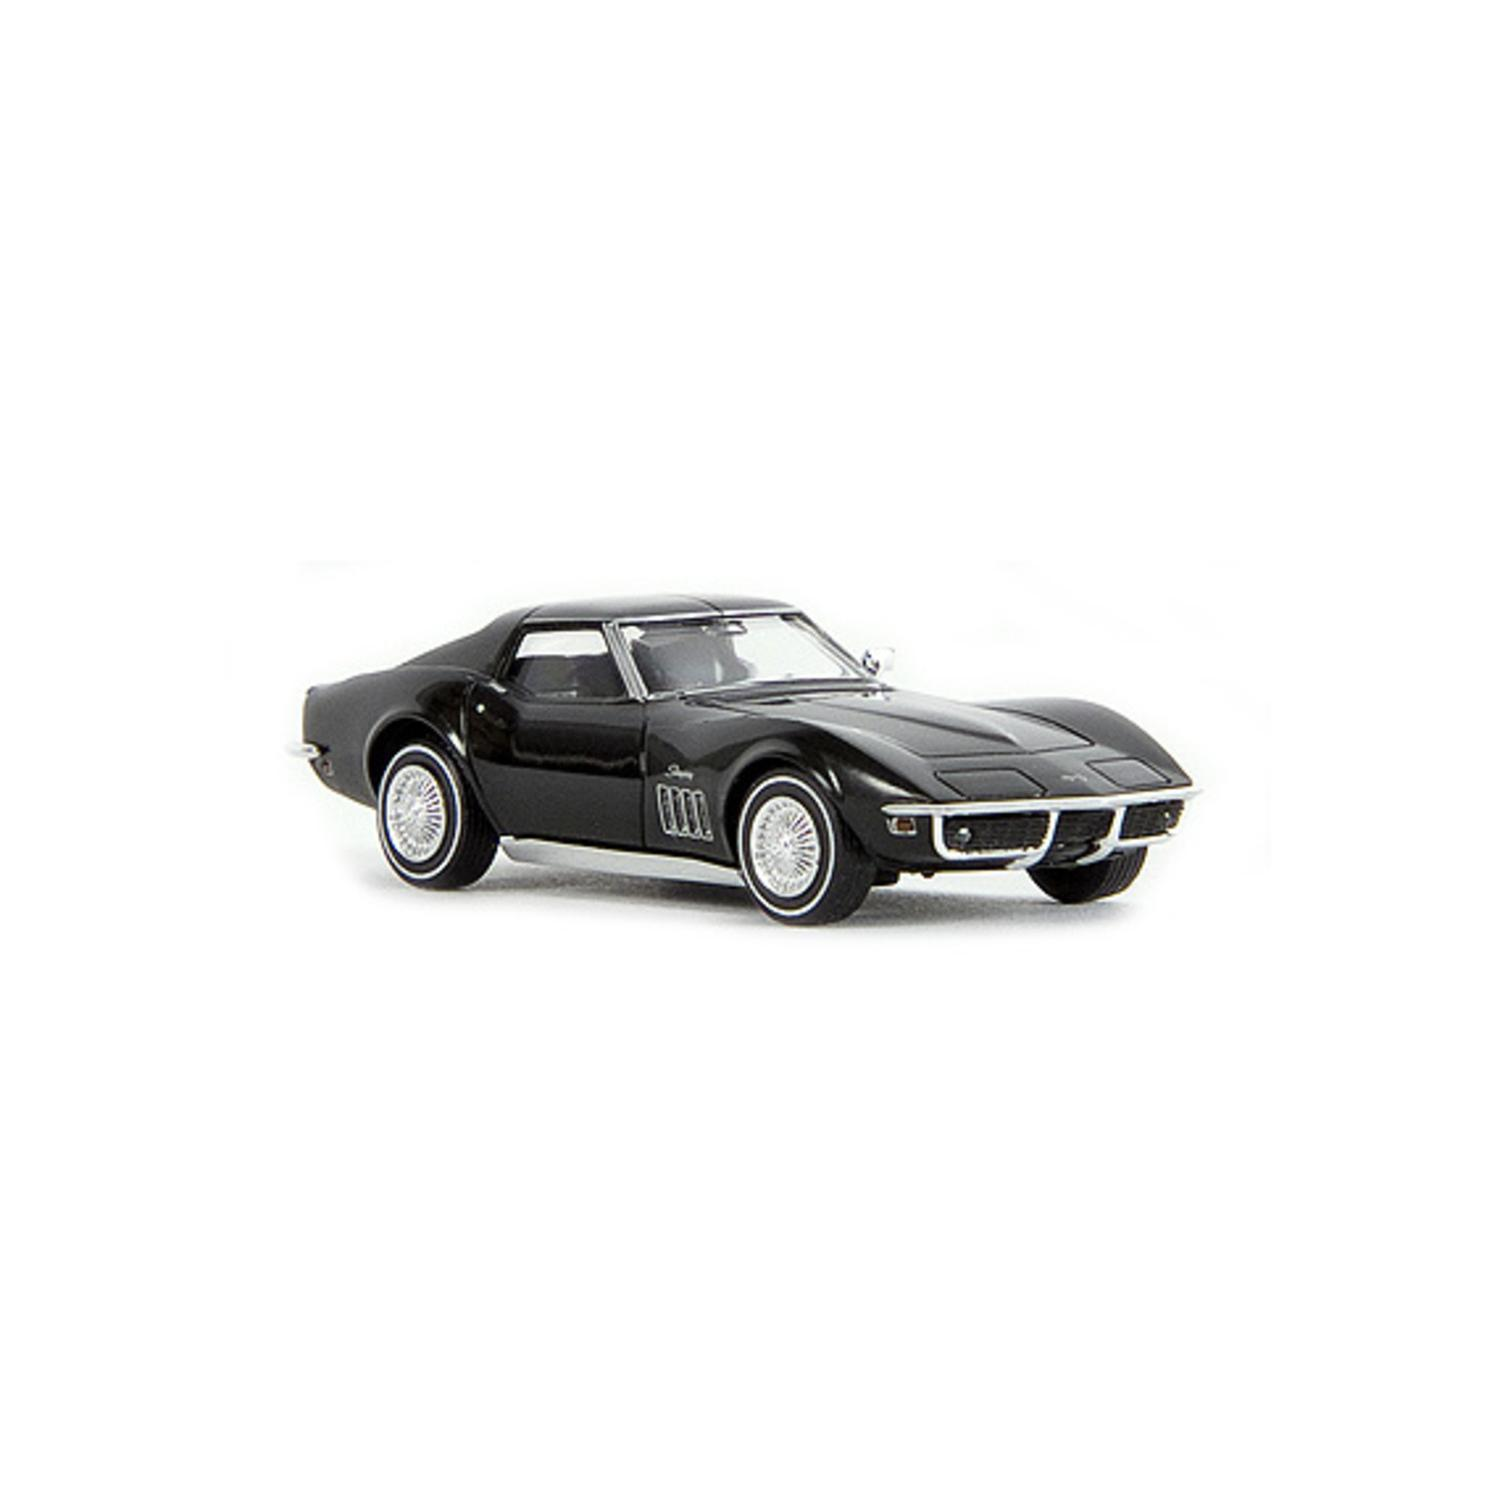 H0 Chevrolet Corvette C3 Stingray schwarz